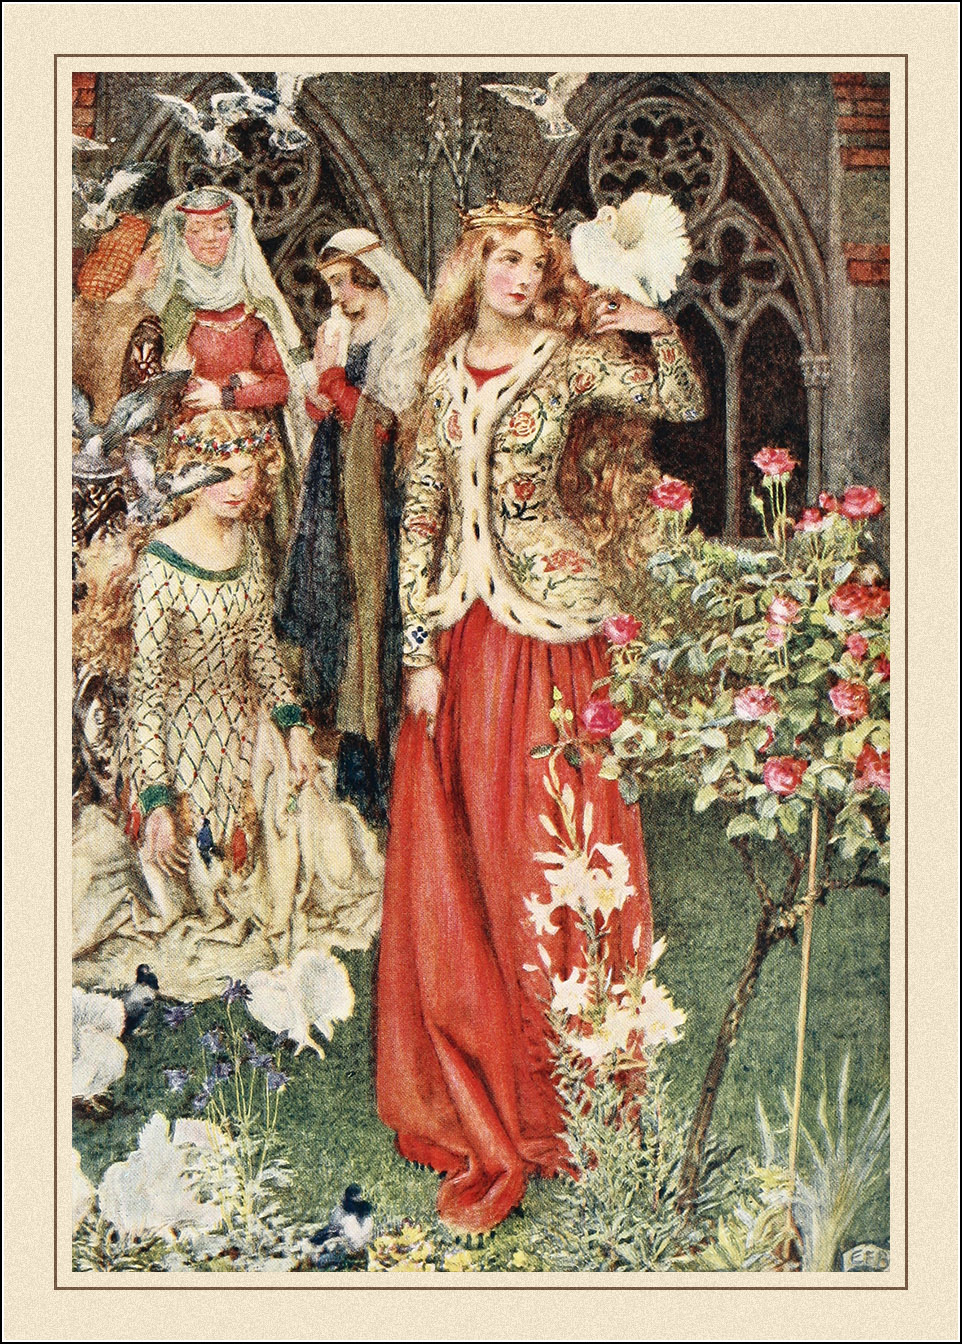 Eleanor Fortescue-Brickdale, Idylls of the King